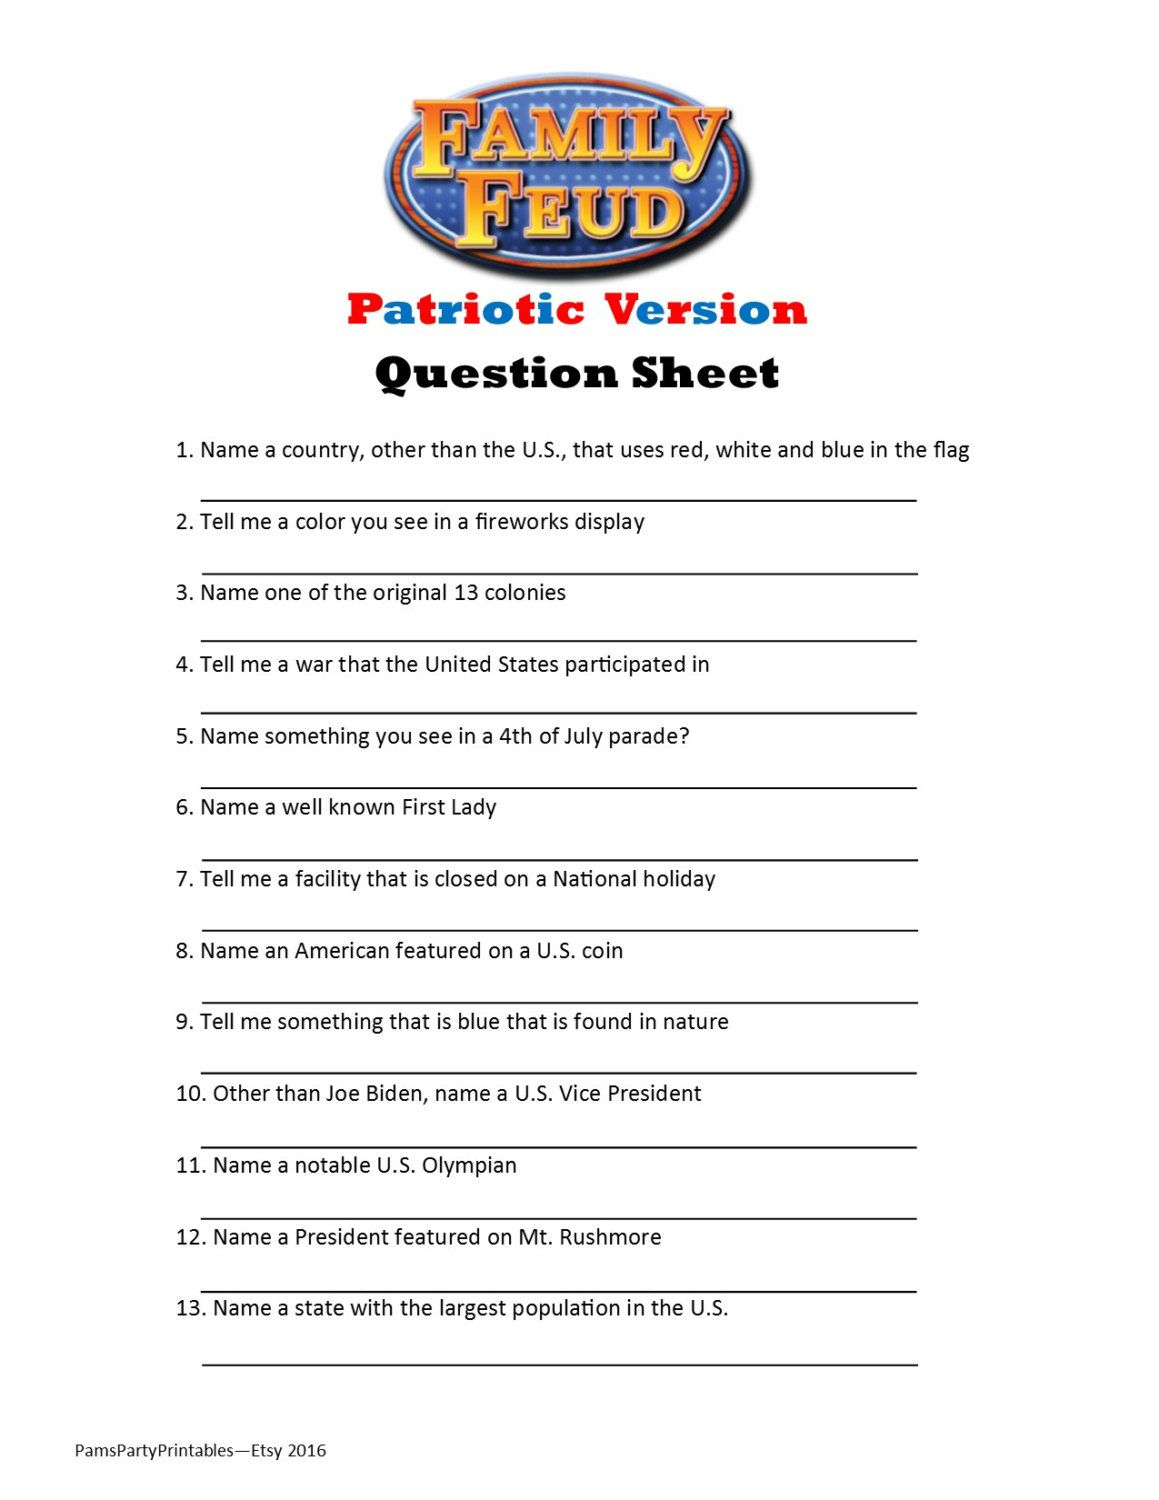 Family Feud Questions And Answers Printable